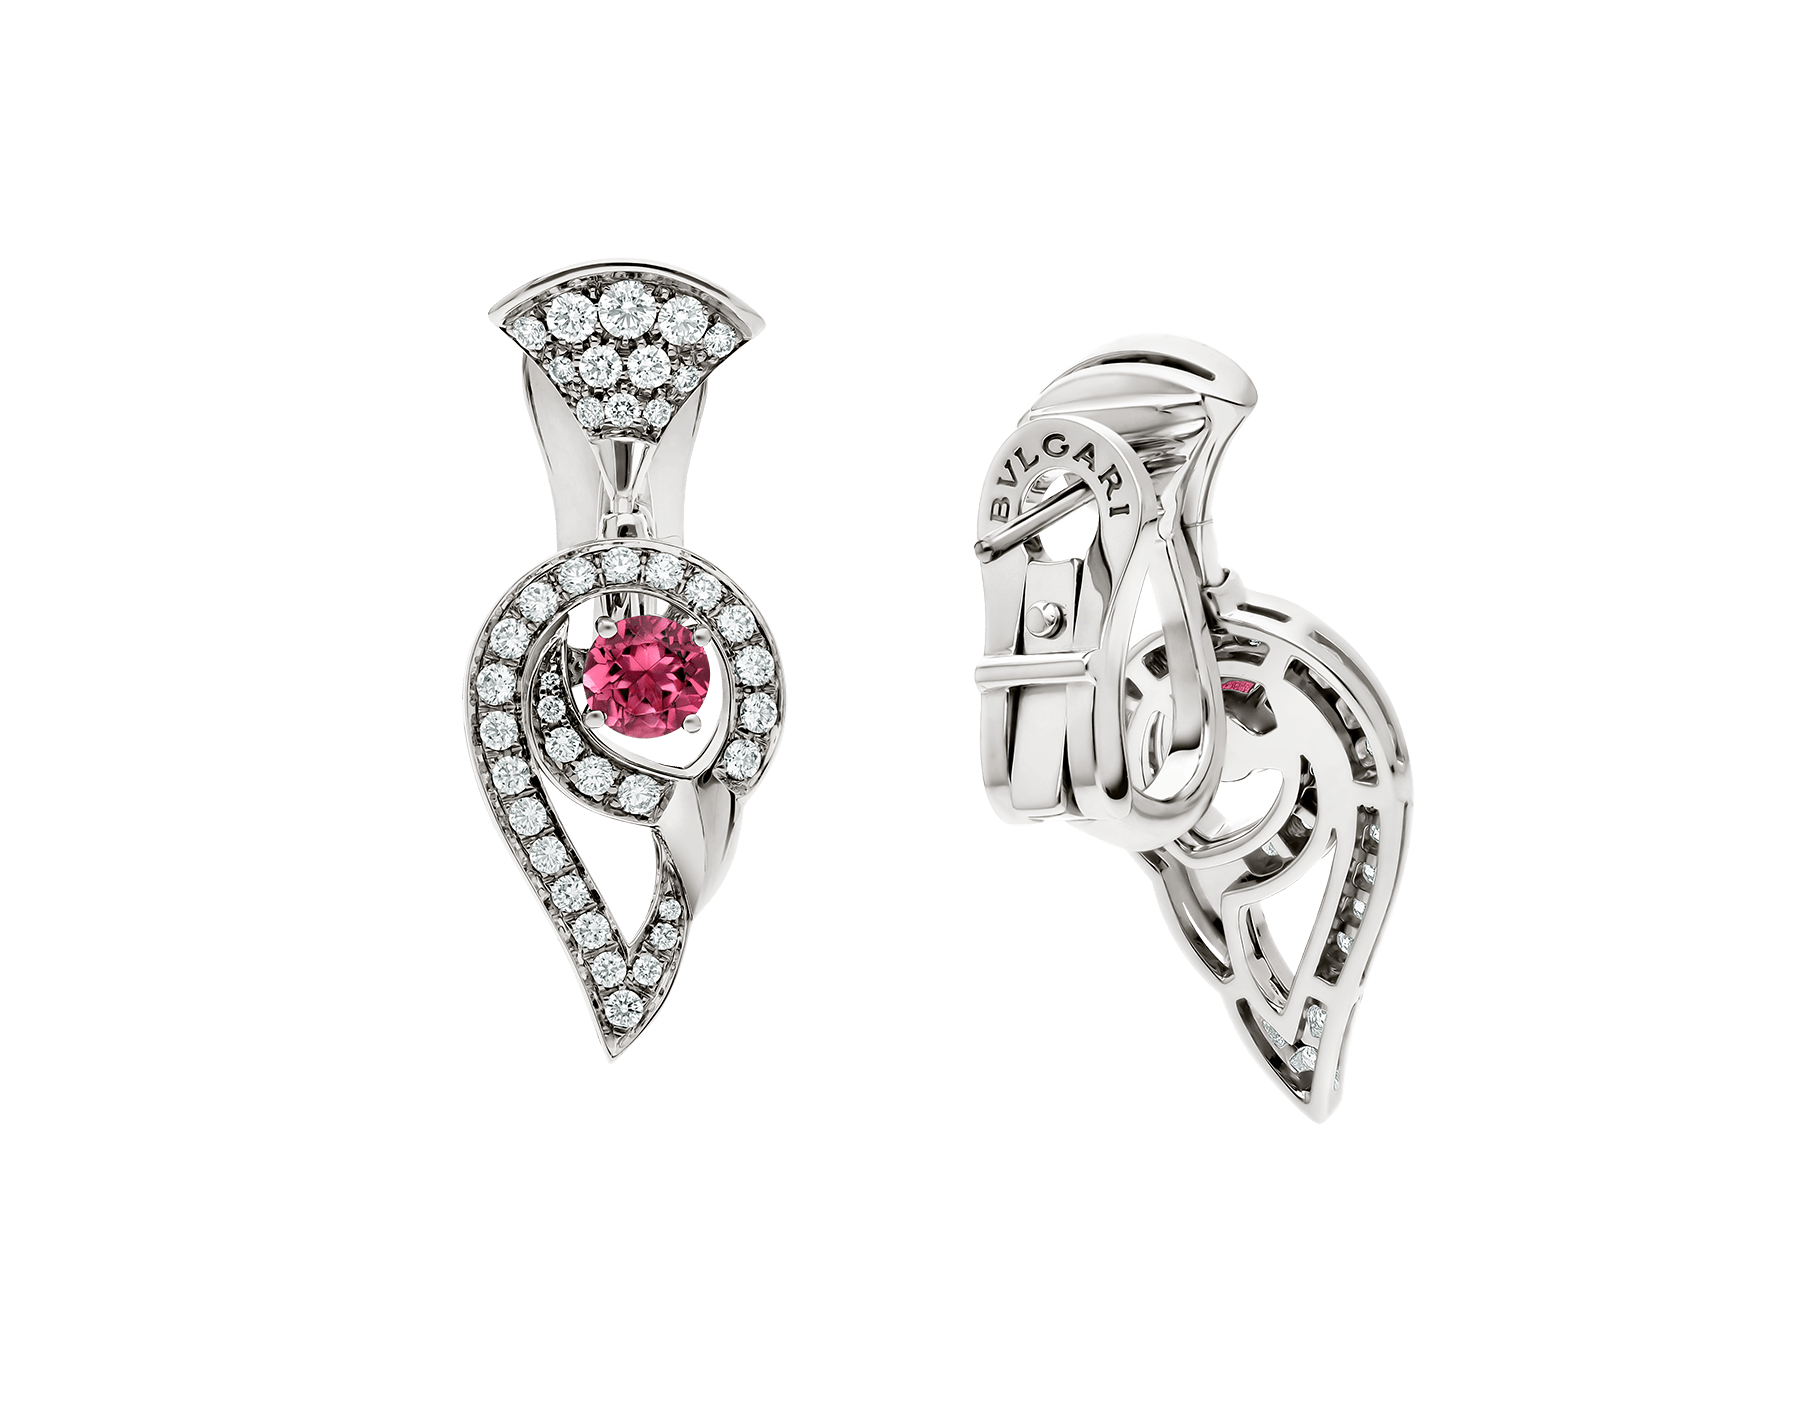 DIVAS' DREAM earrings in 18 kt white gold set with pink rubellite (0.75 ct) and pavé diamonds (1.10 ct). 354082 image 3